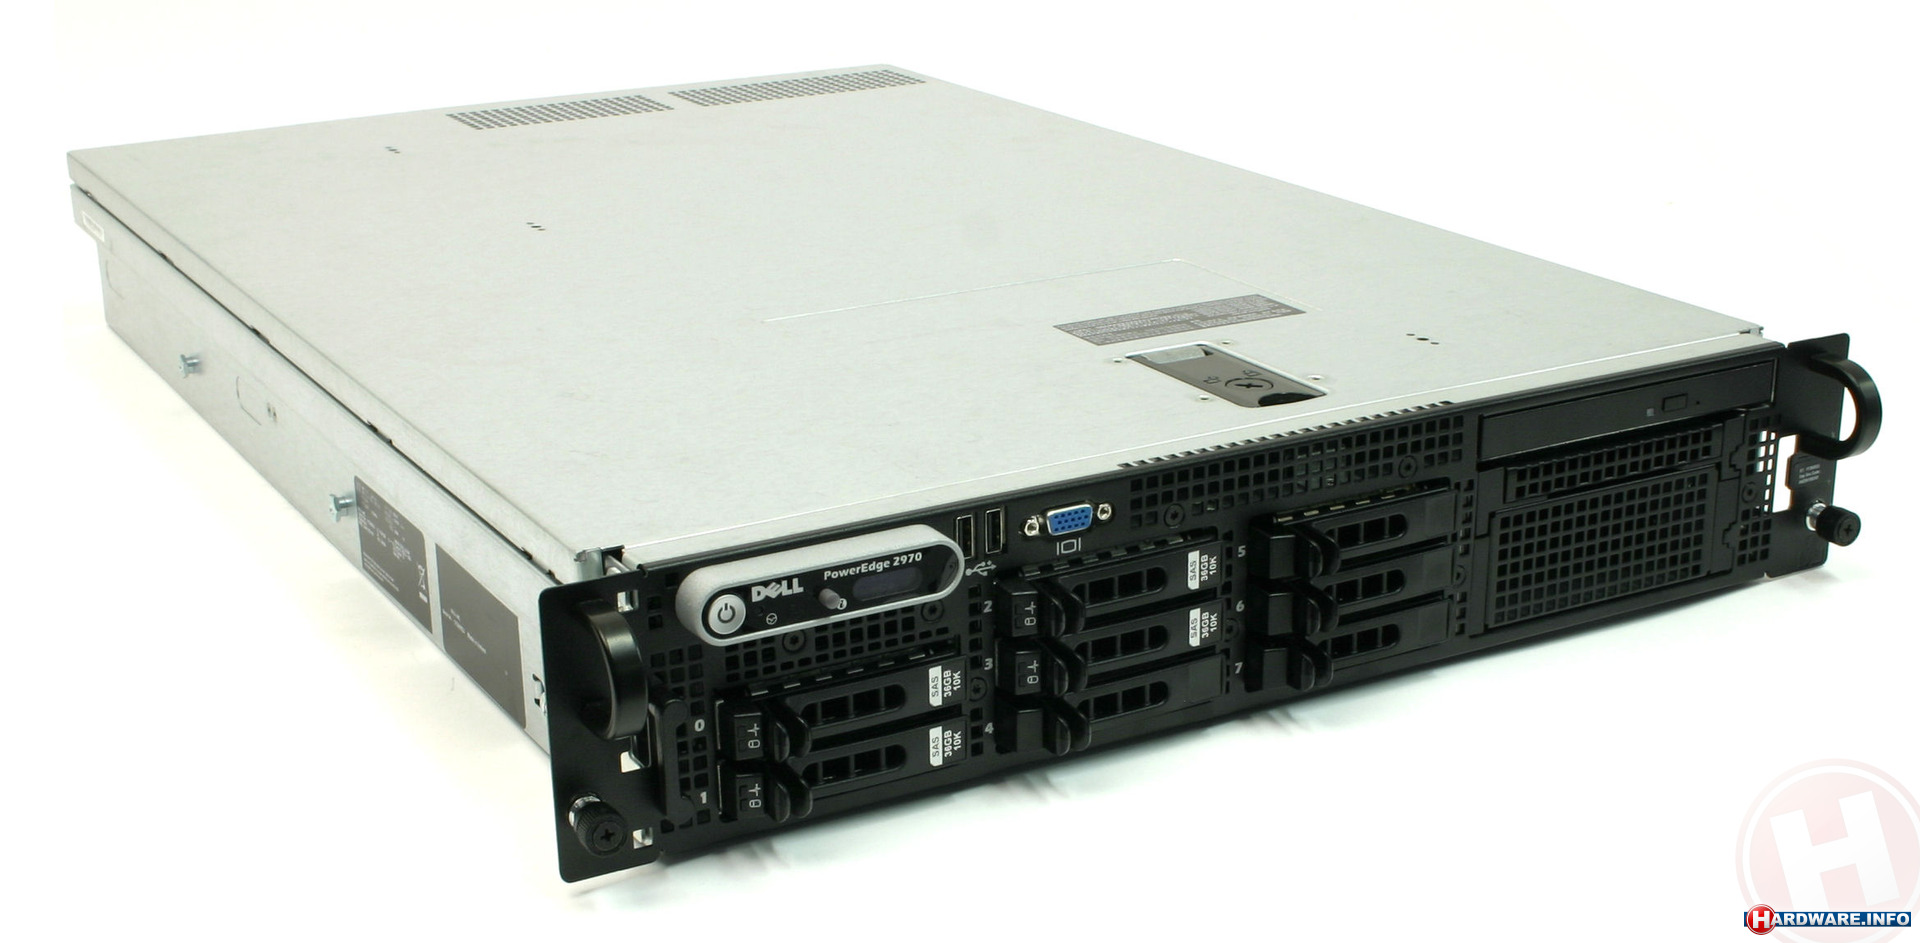 Dell Poweredge 2970 Server